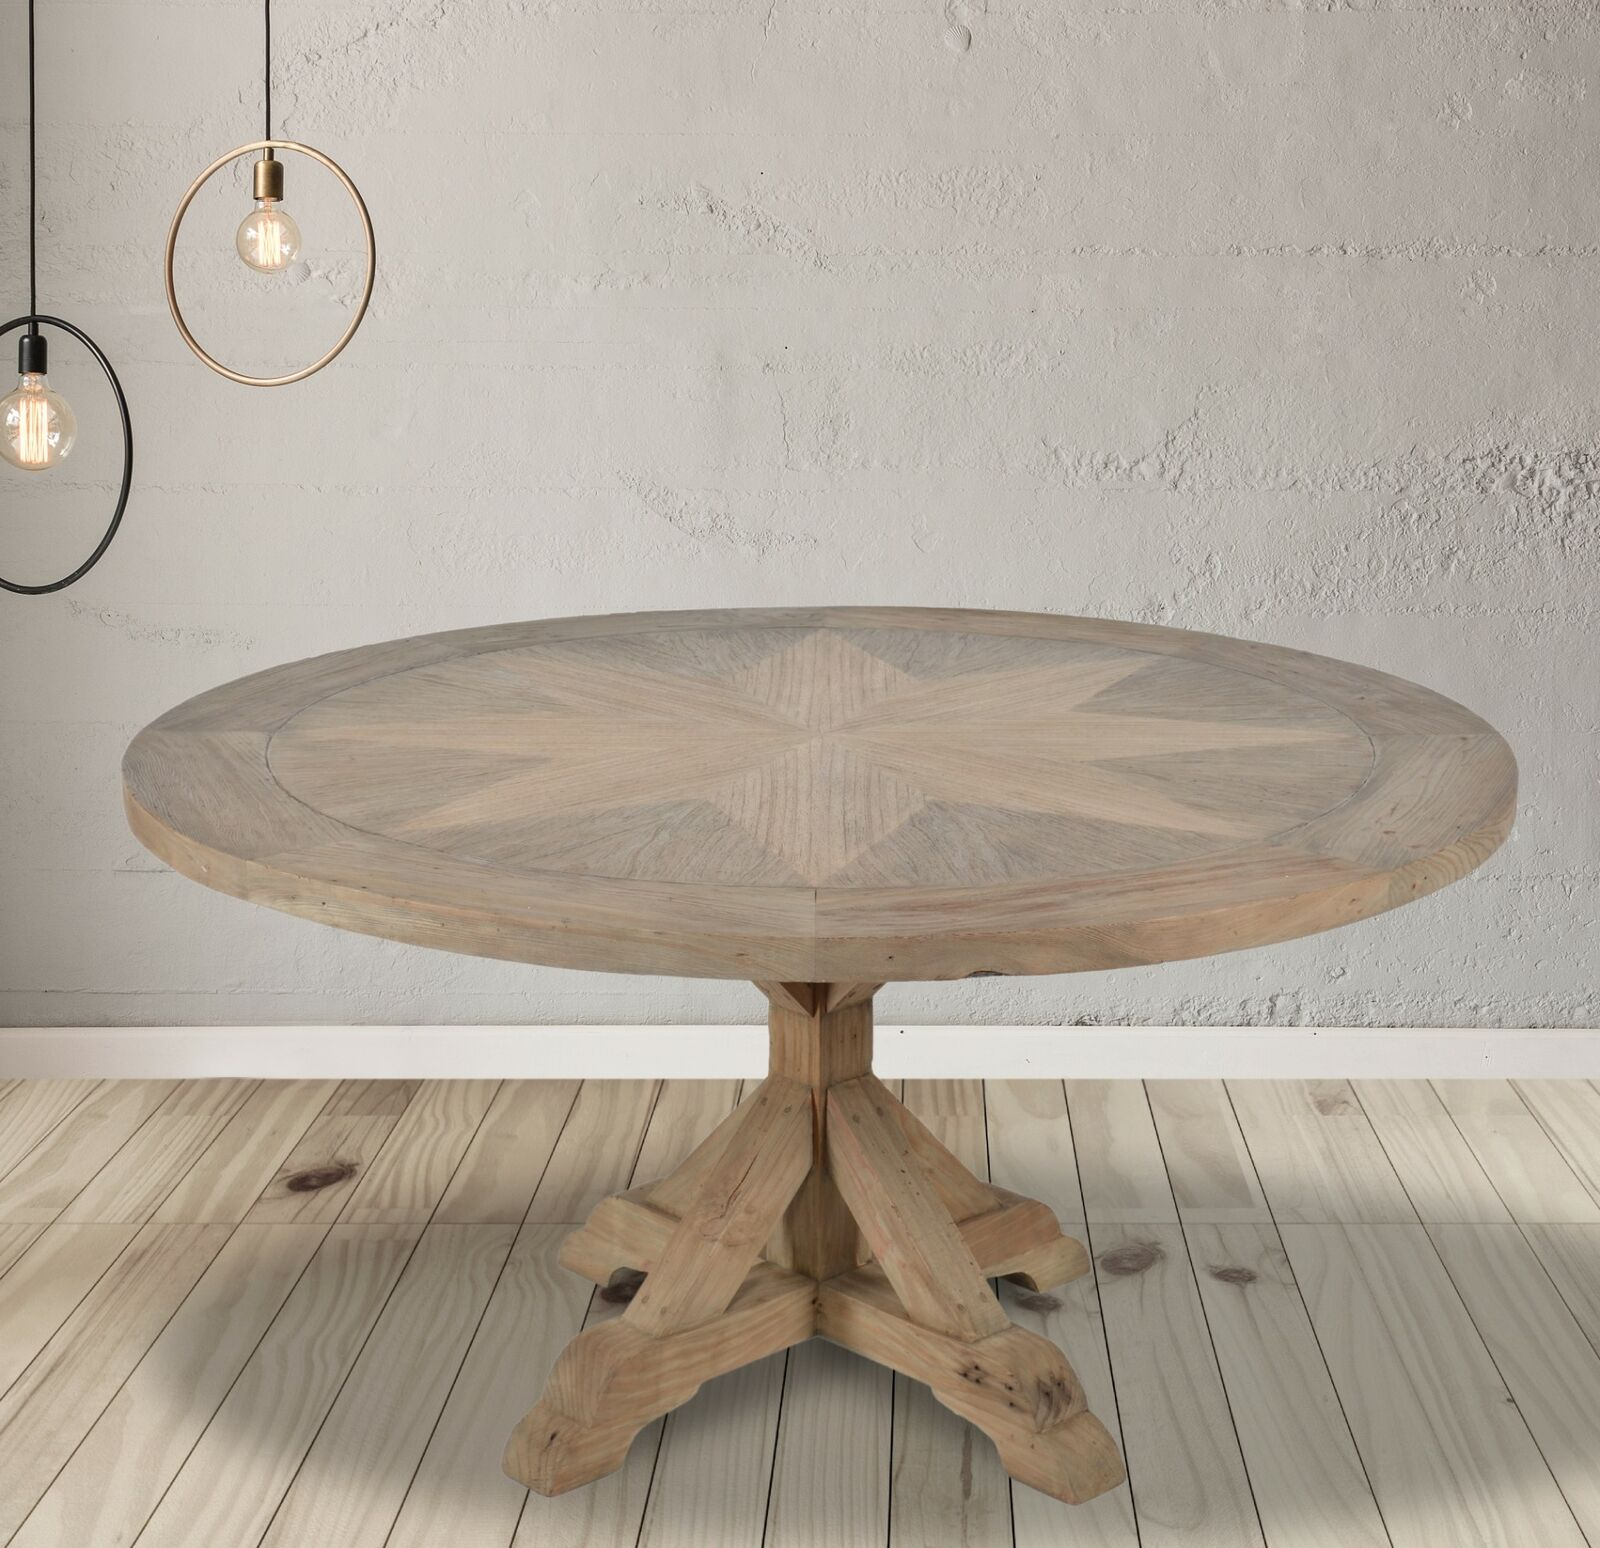 Farmhouse Dining Table Round French Country Pedestal Rustic Kitchen Nook White For Sale Online Ebay